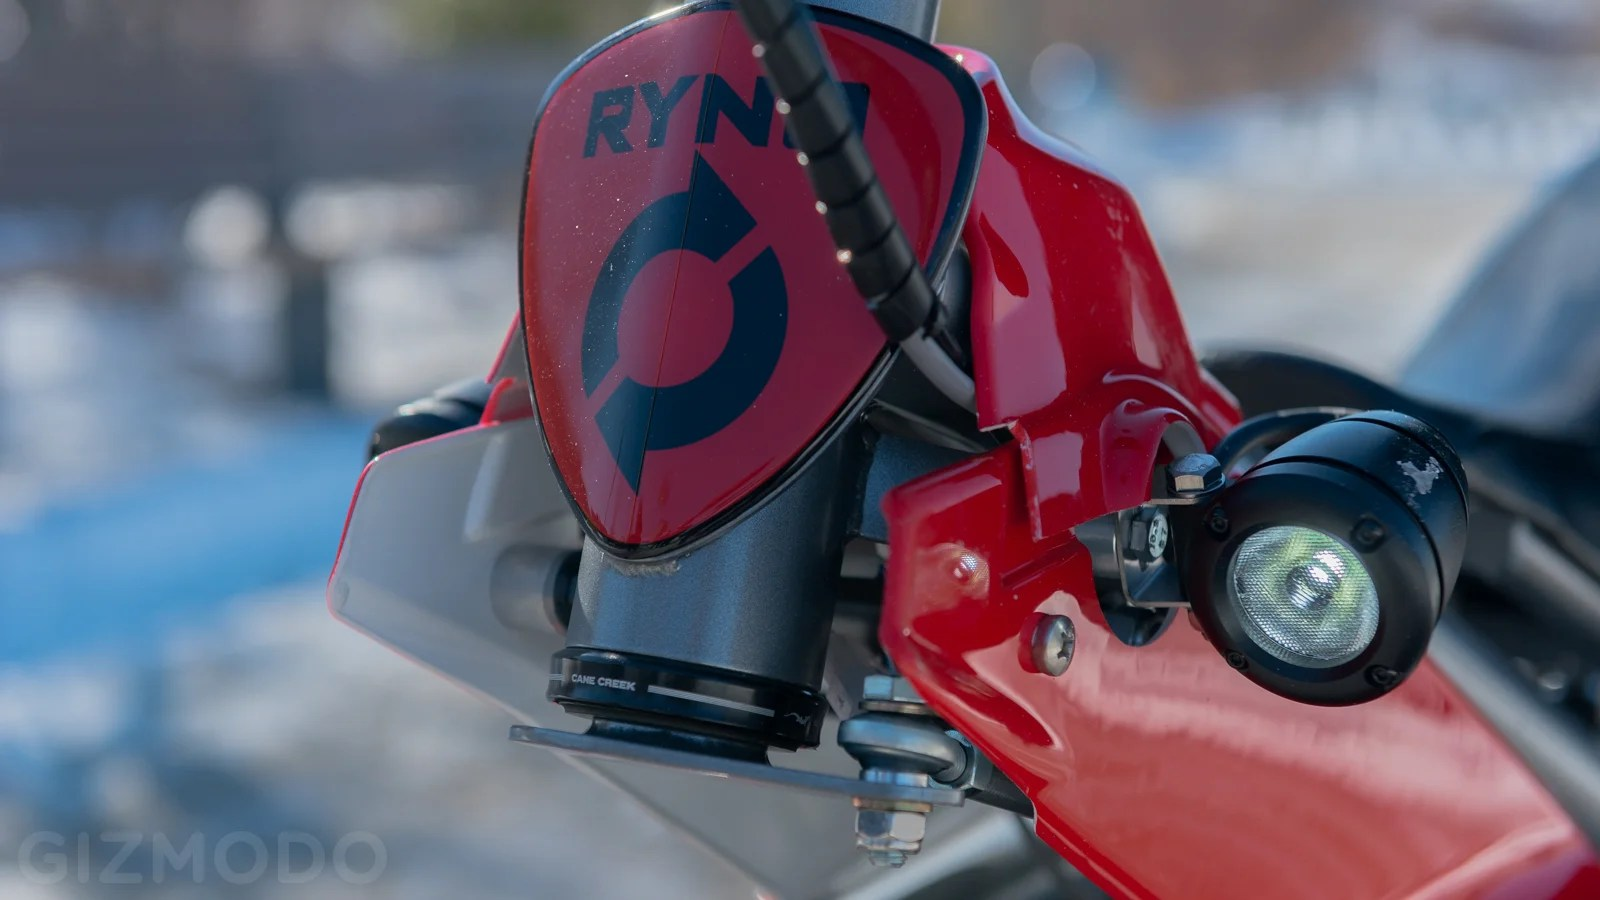 Riding the RYNO: When Two Wheels Is Too Many